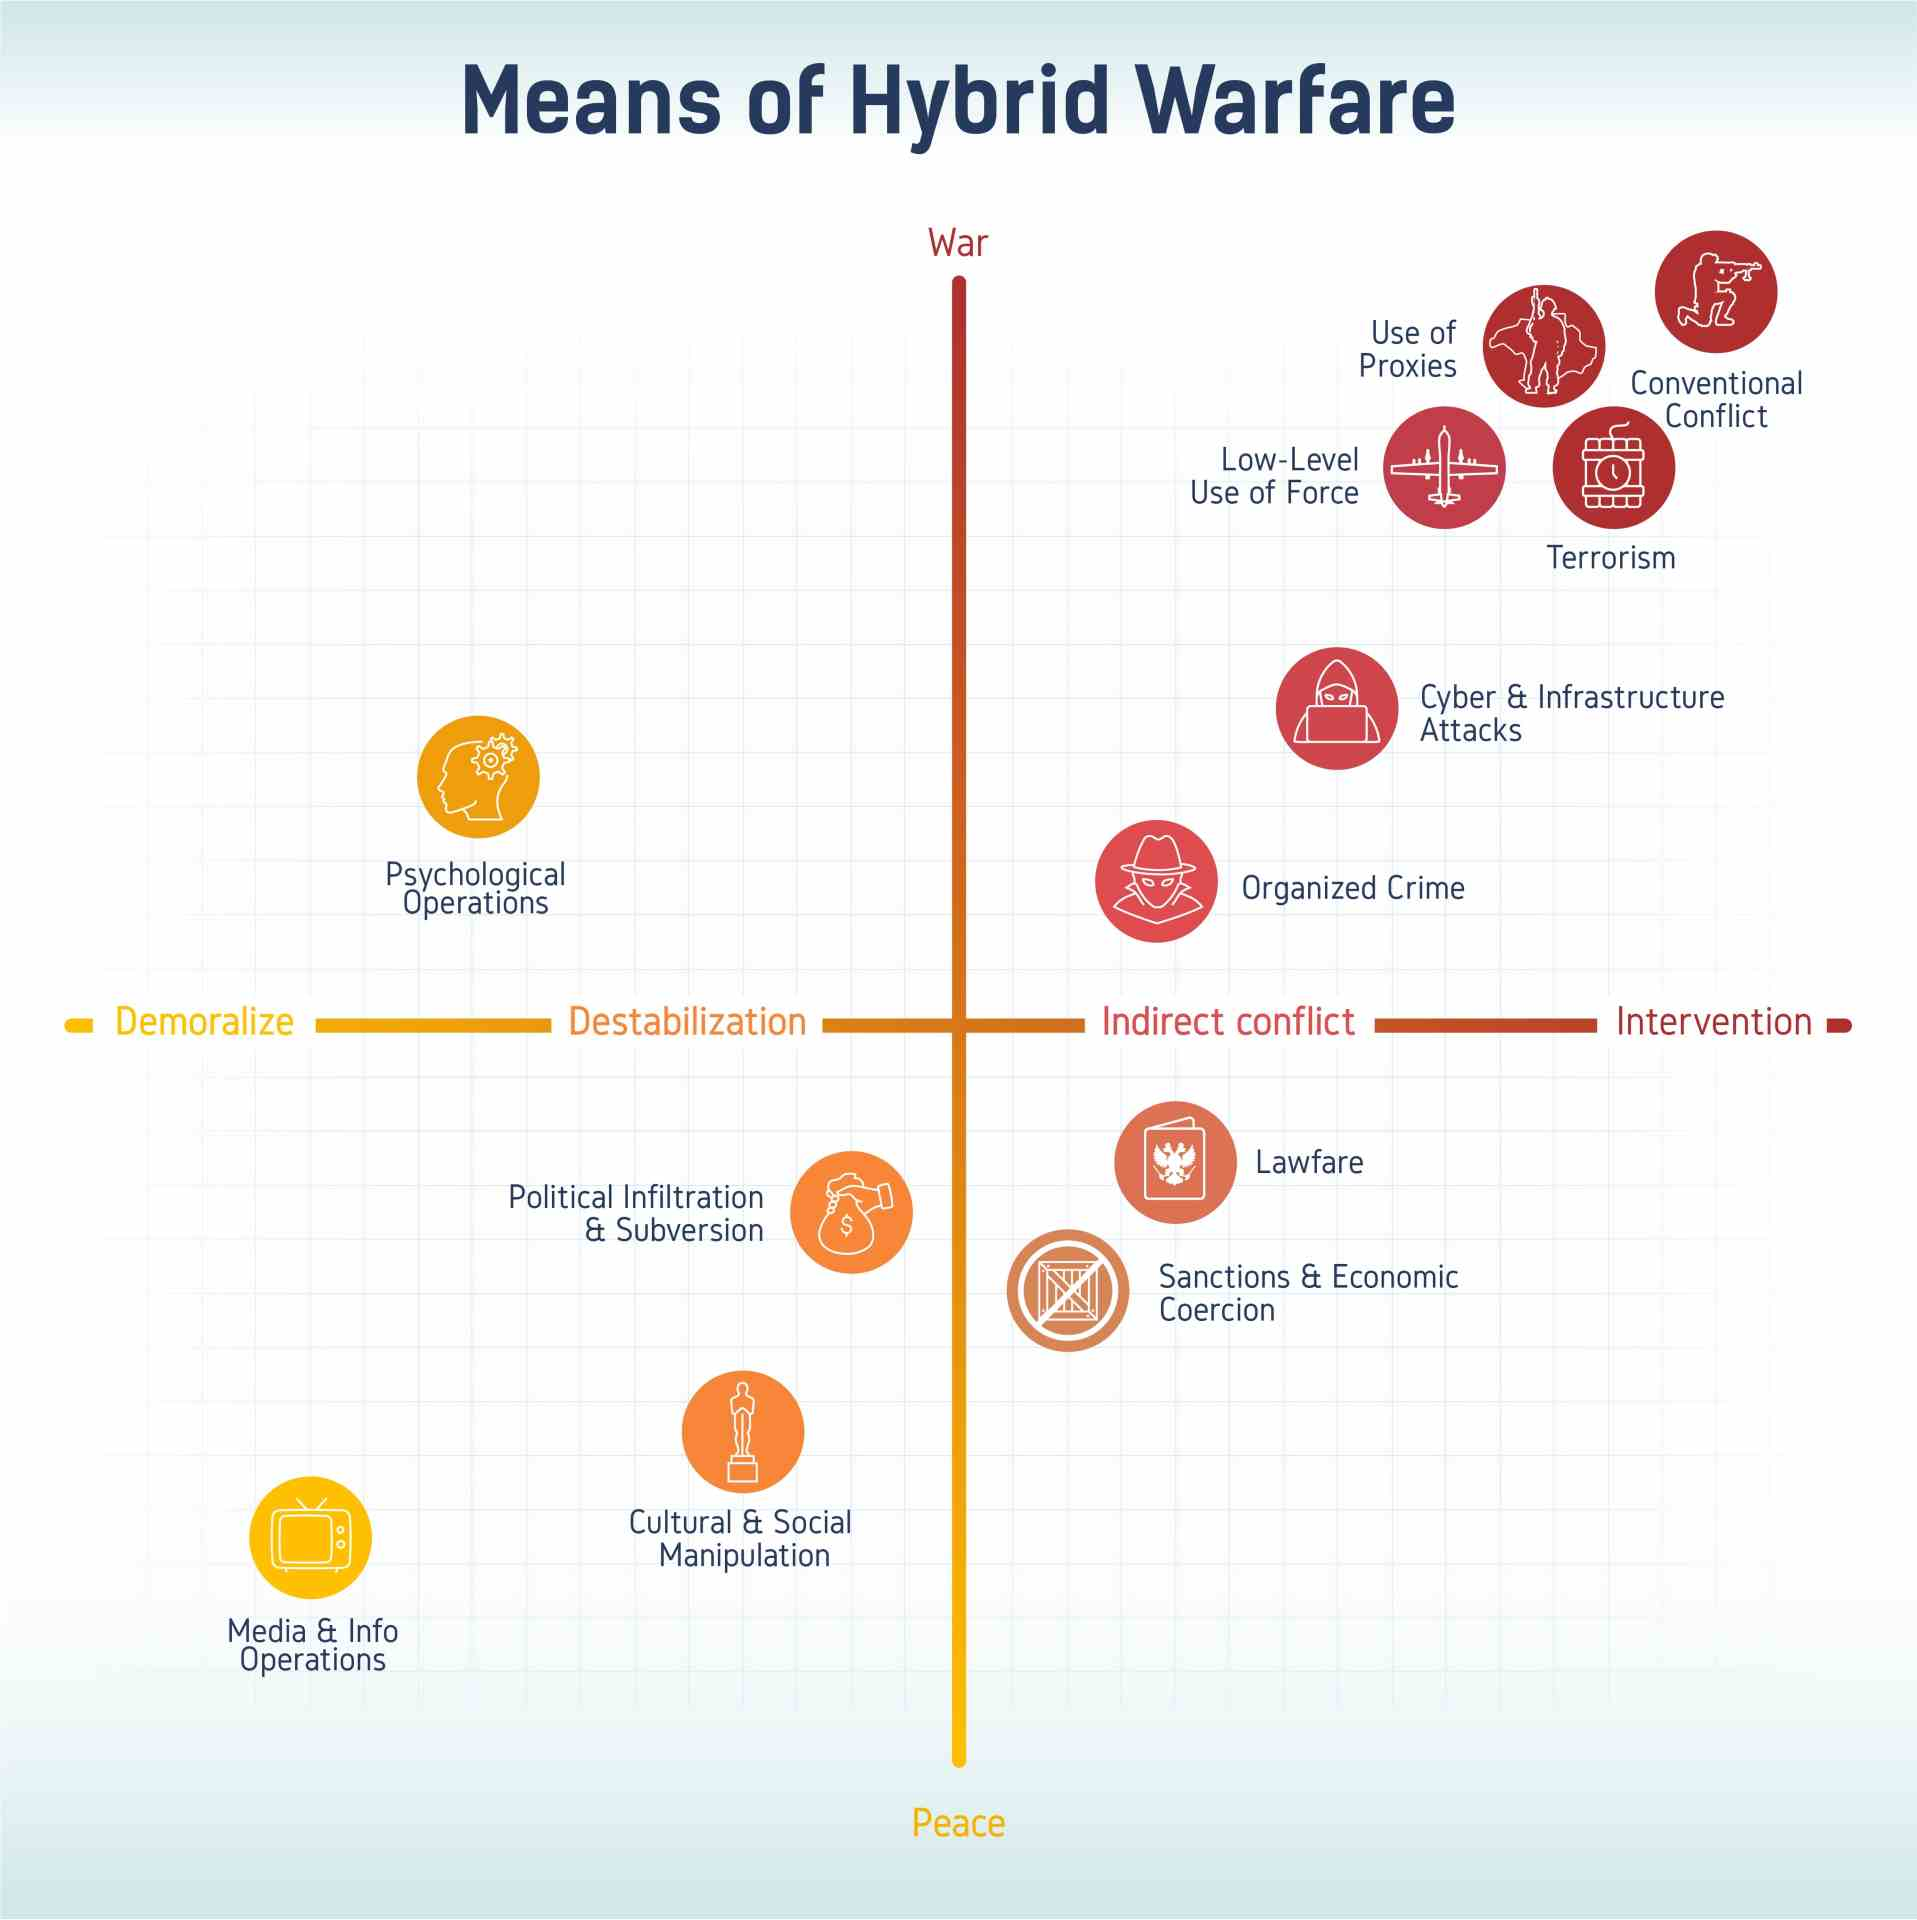 Means of Hybrid Warfare infographic